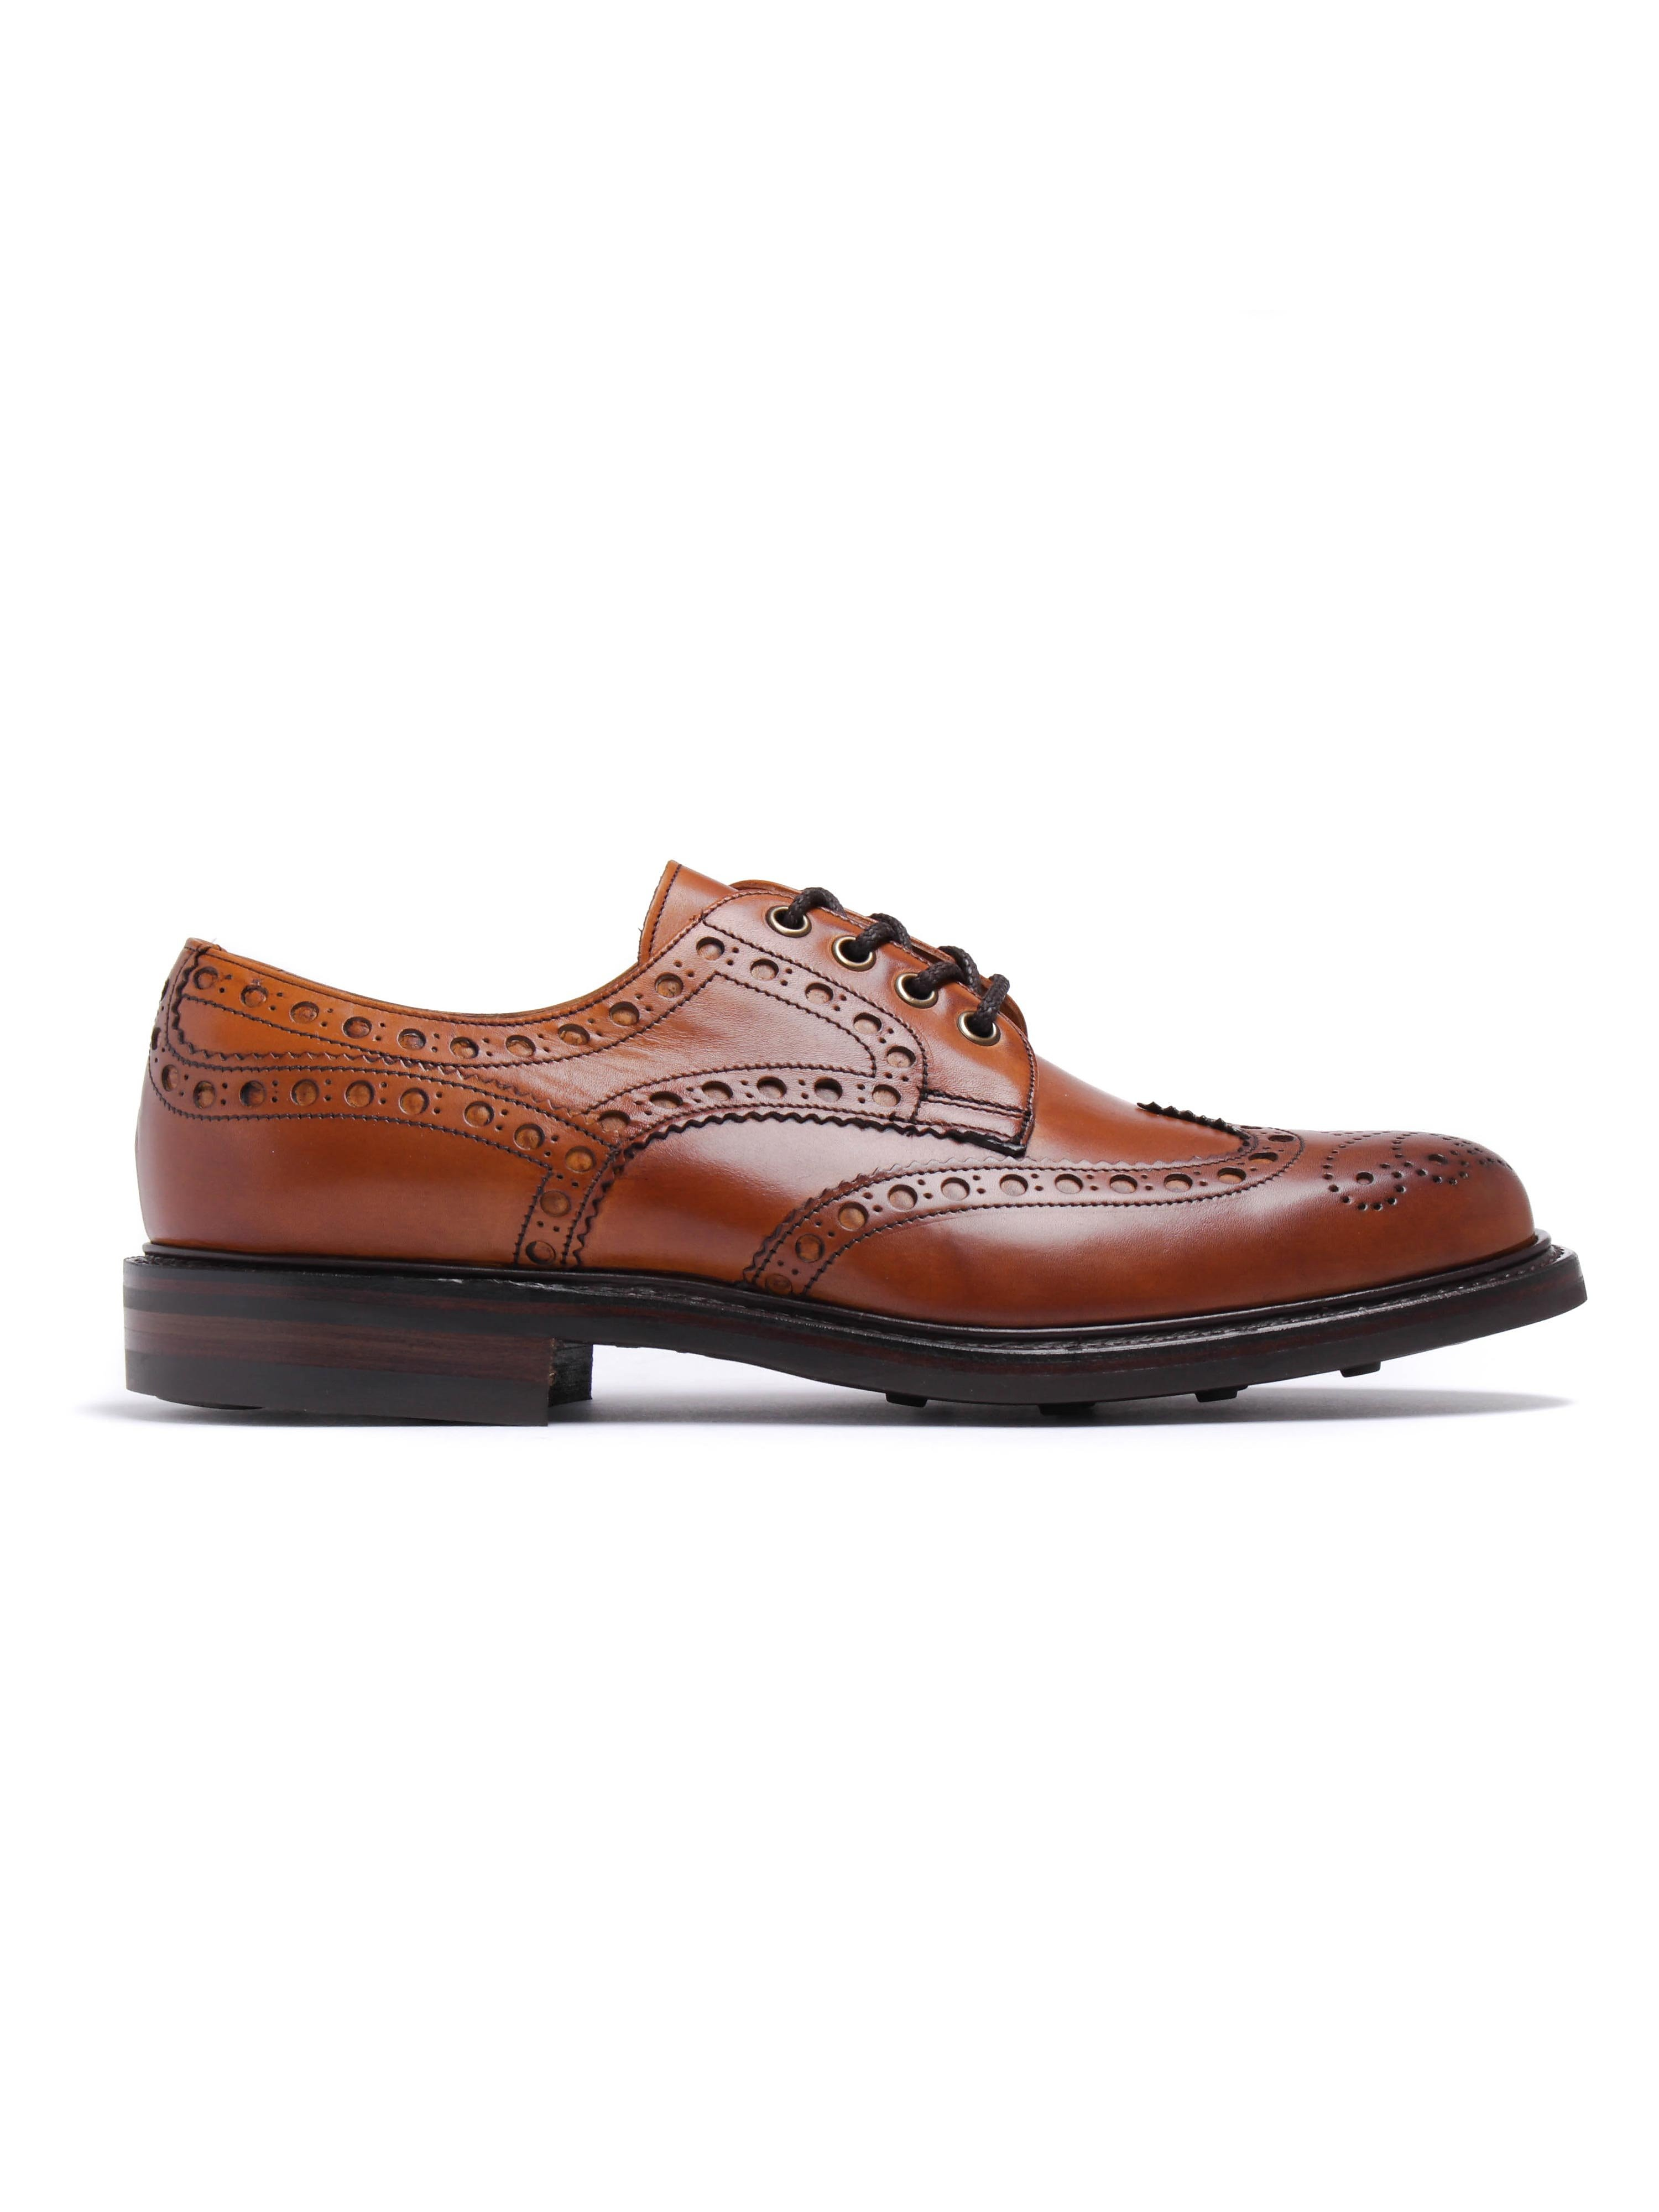 Cheaney Men's Avon D Leather Wing-Cap Brogues - Dark Leaf